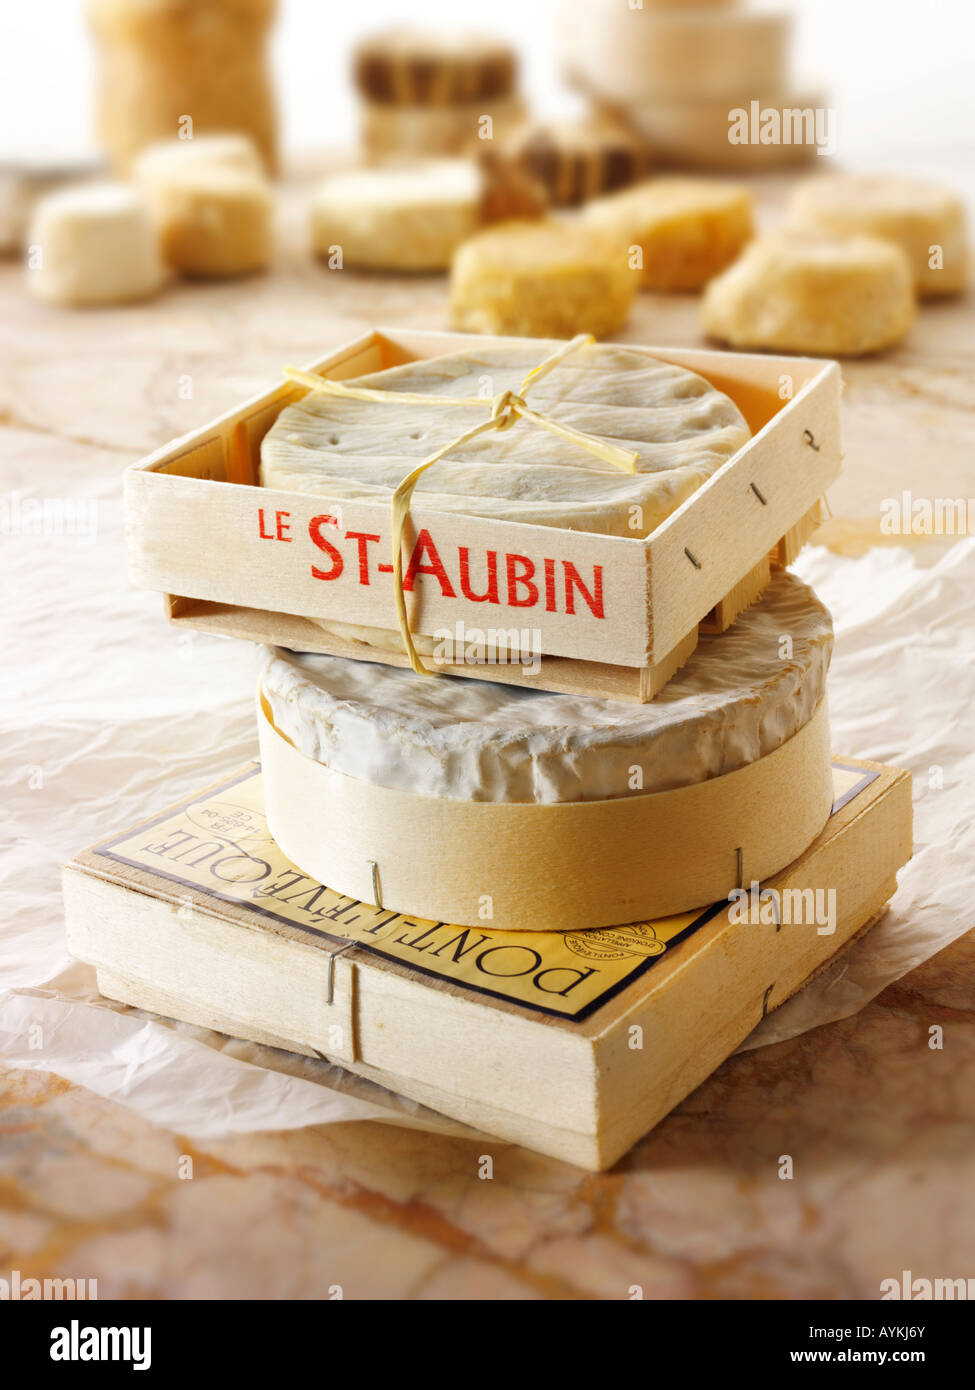 French Regional cheeses - From Top -   St Aubin, Camembert, and Pont L'eveque - Stock Image